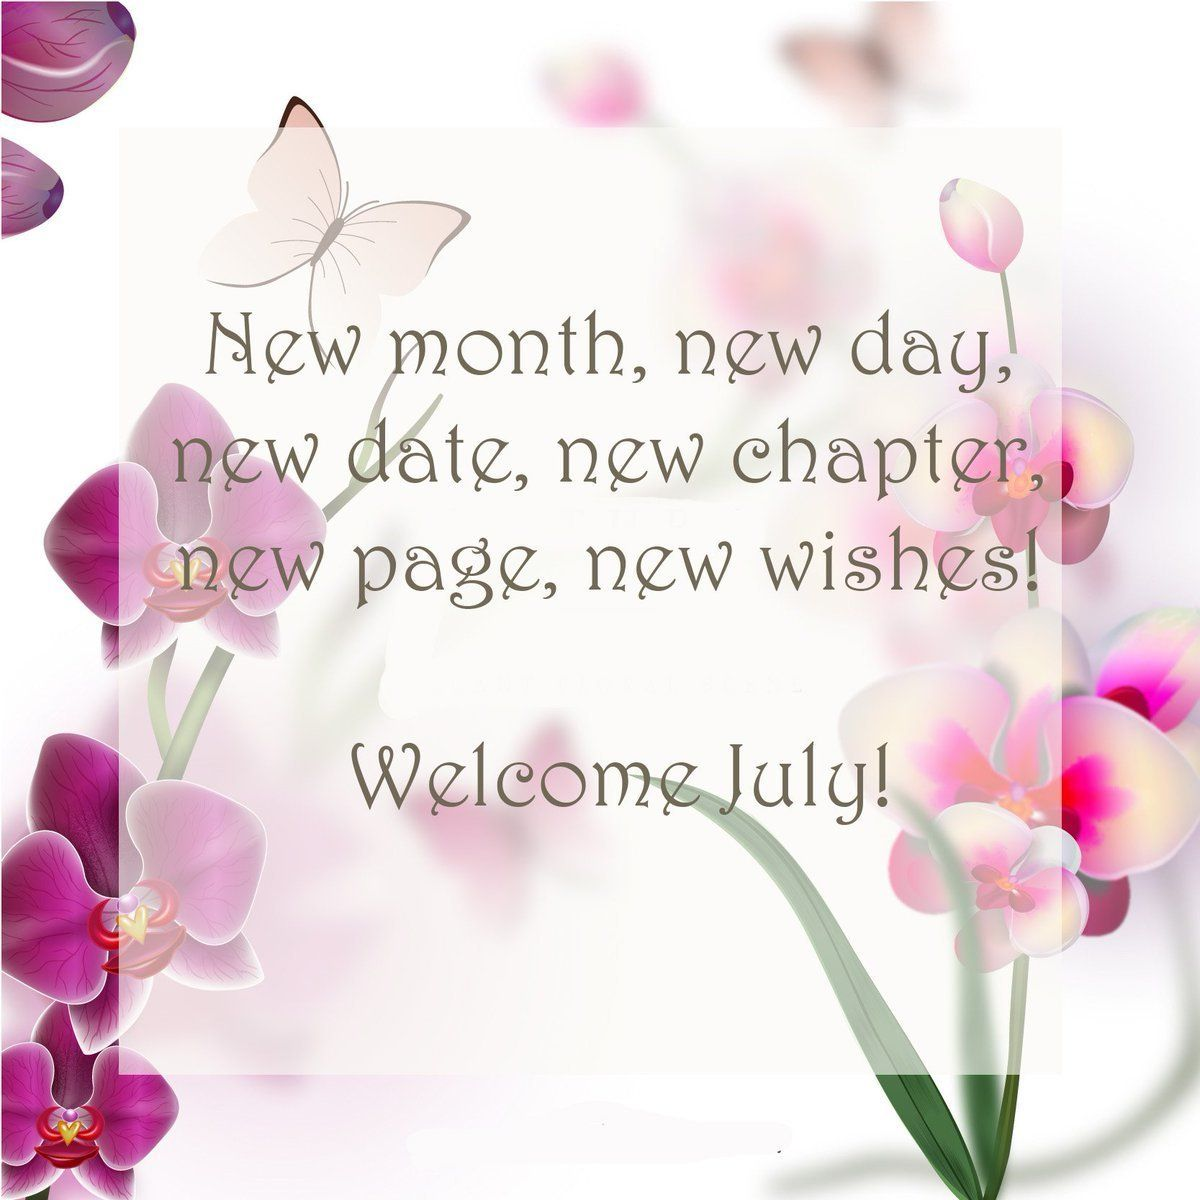 Welcome July  Book A Builder UK  Welcome july, July quotes